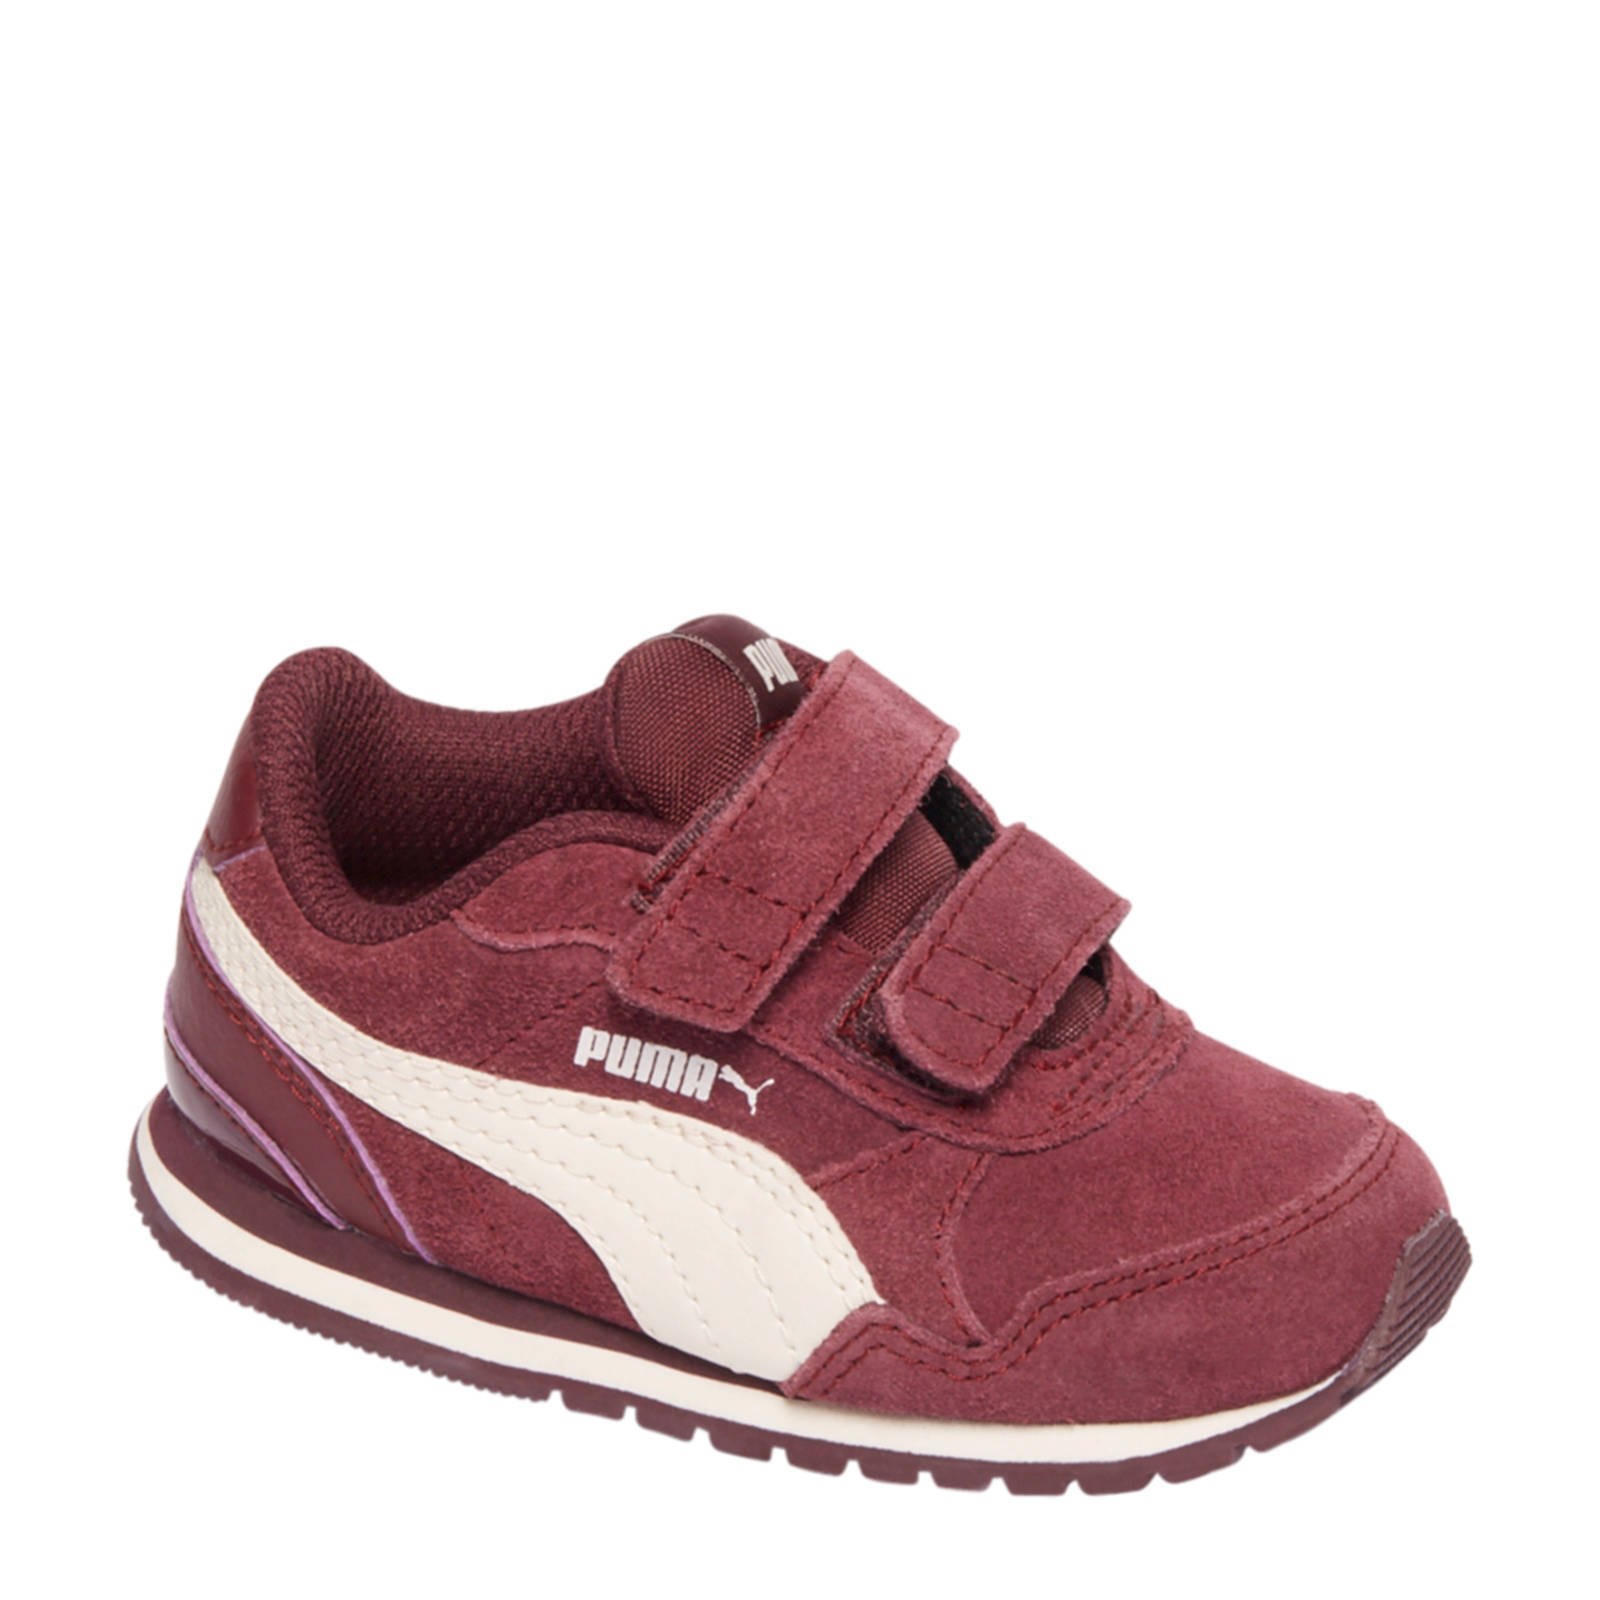 Puma suède sneakers ST Runner bordeaux kids